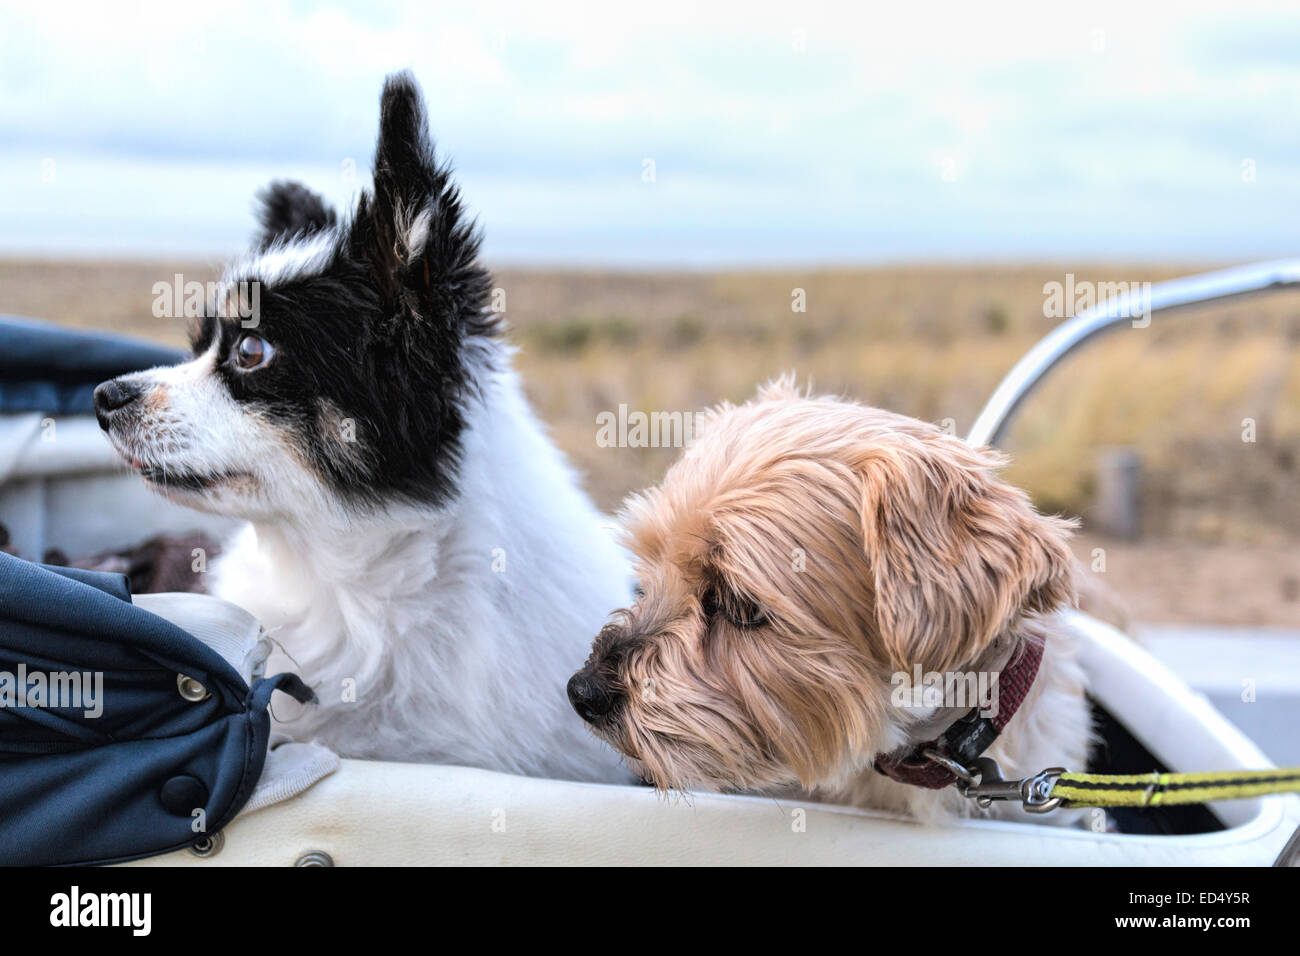 Two senior dogs, a Papillon and a Yorkshire Terrier seated in a vintage pram looking in the same direction. - Stock Image